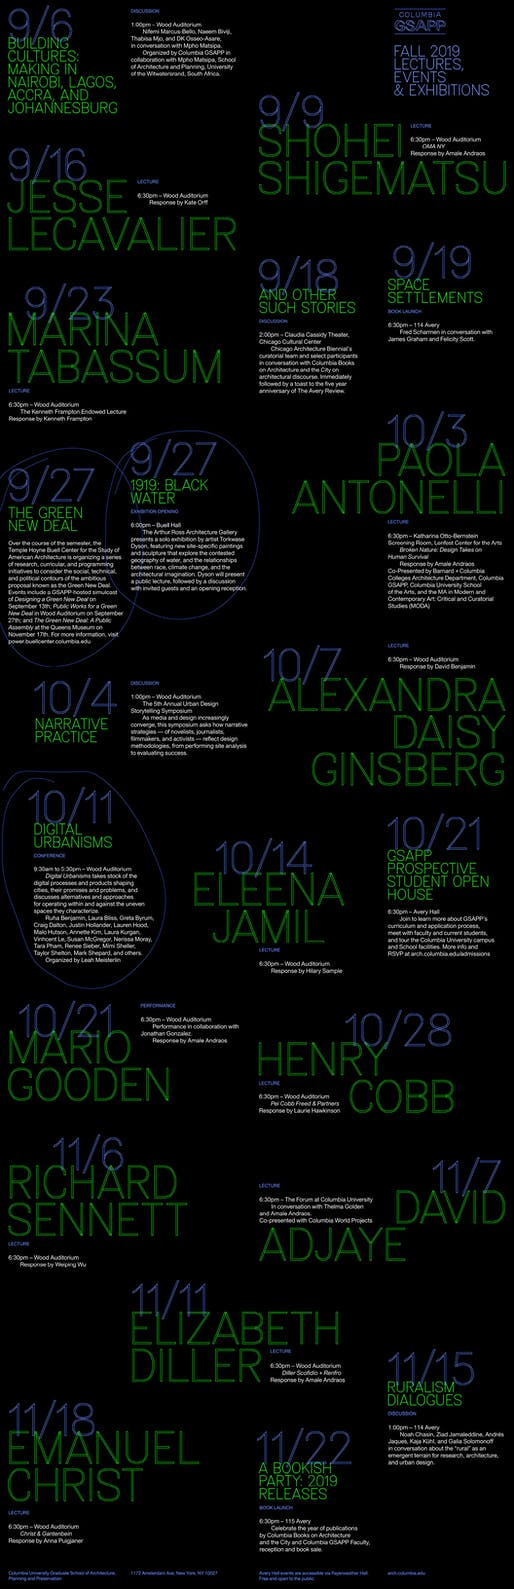 Poster courtesy of Columbia GSAPP.